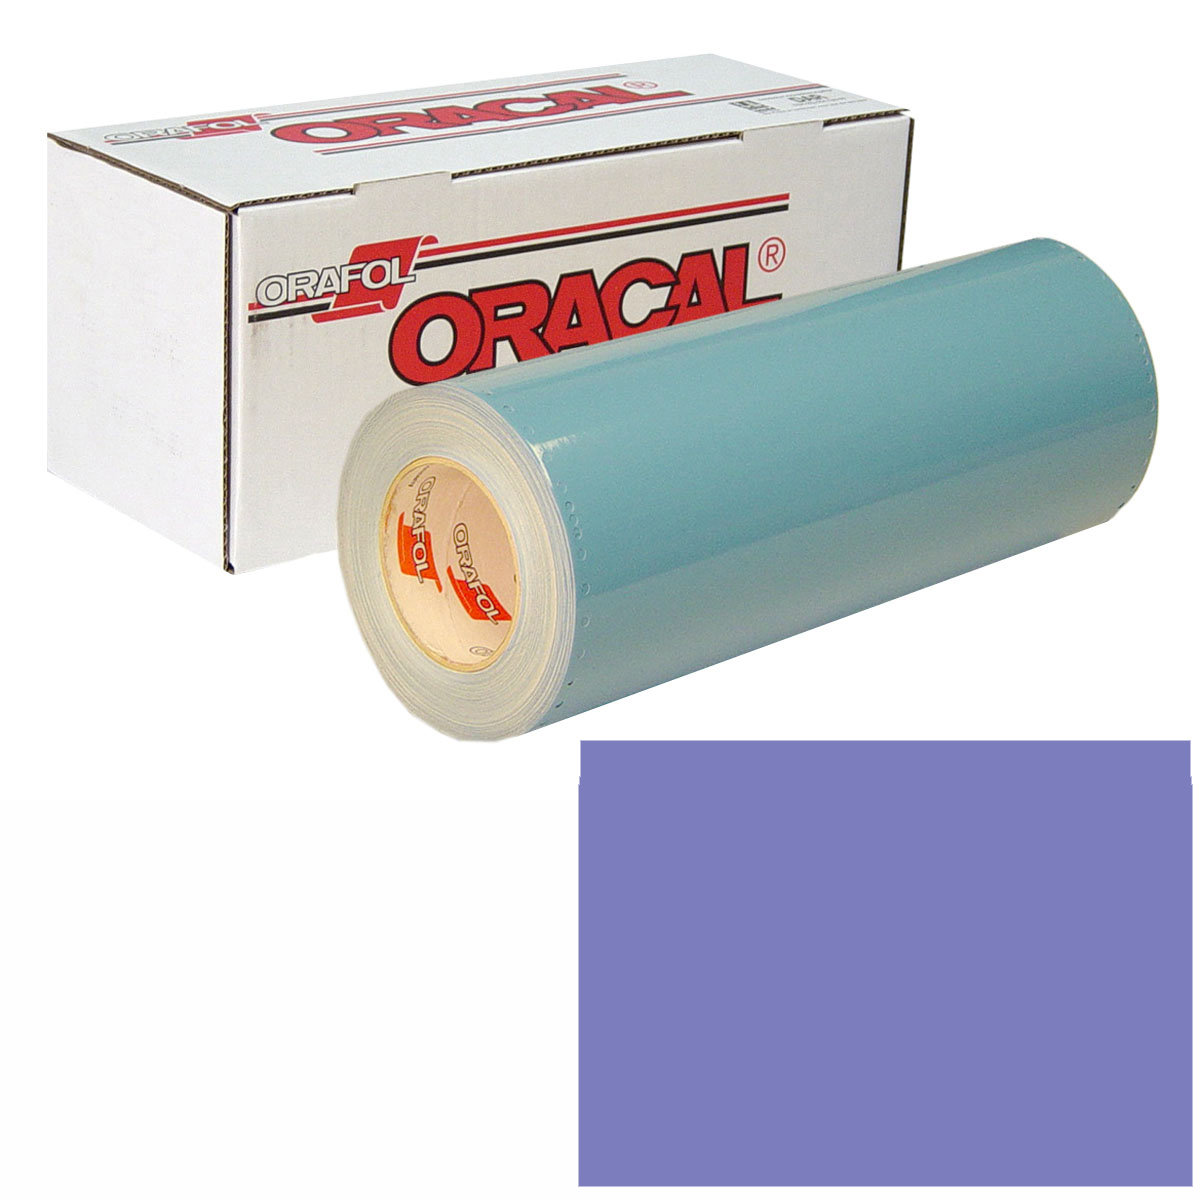 ORACAL 751 15In X 50Yd 043 Lavender